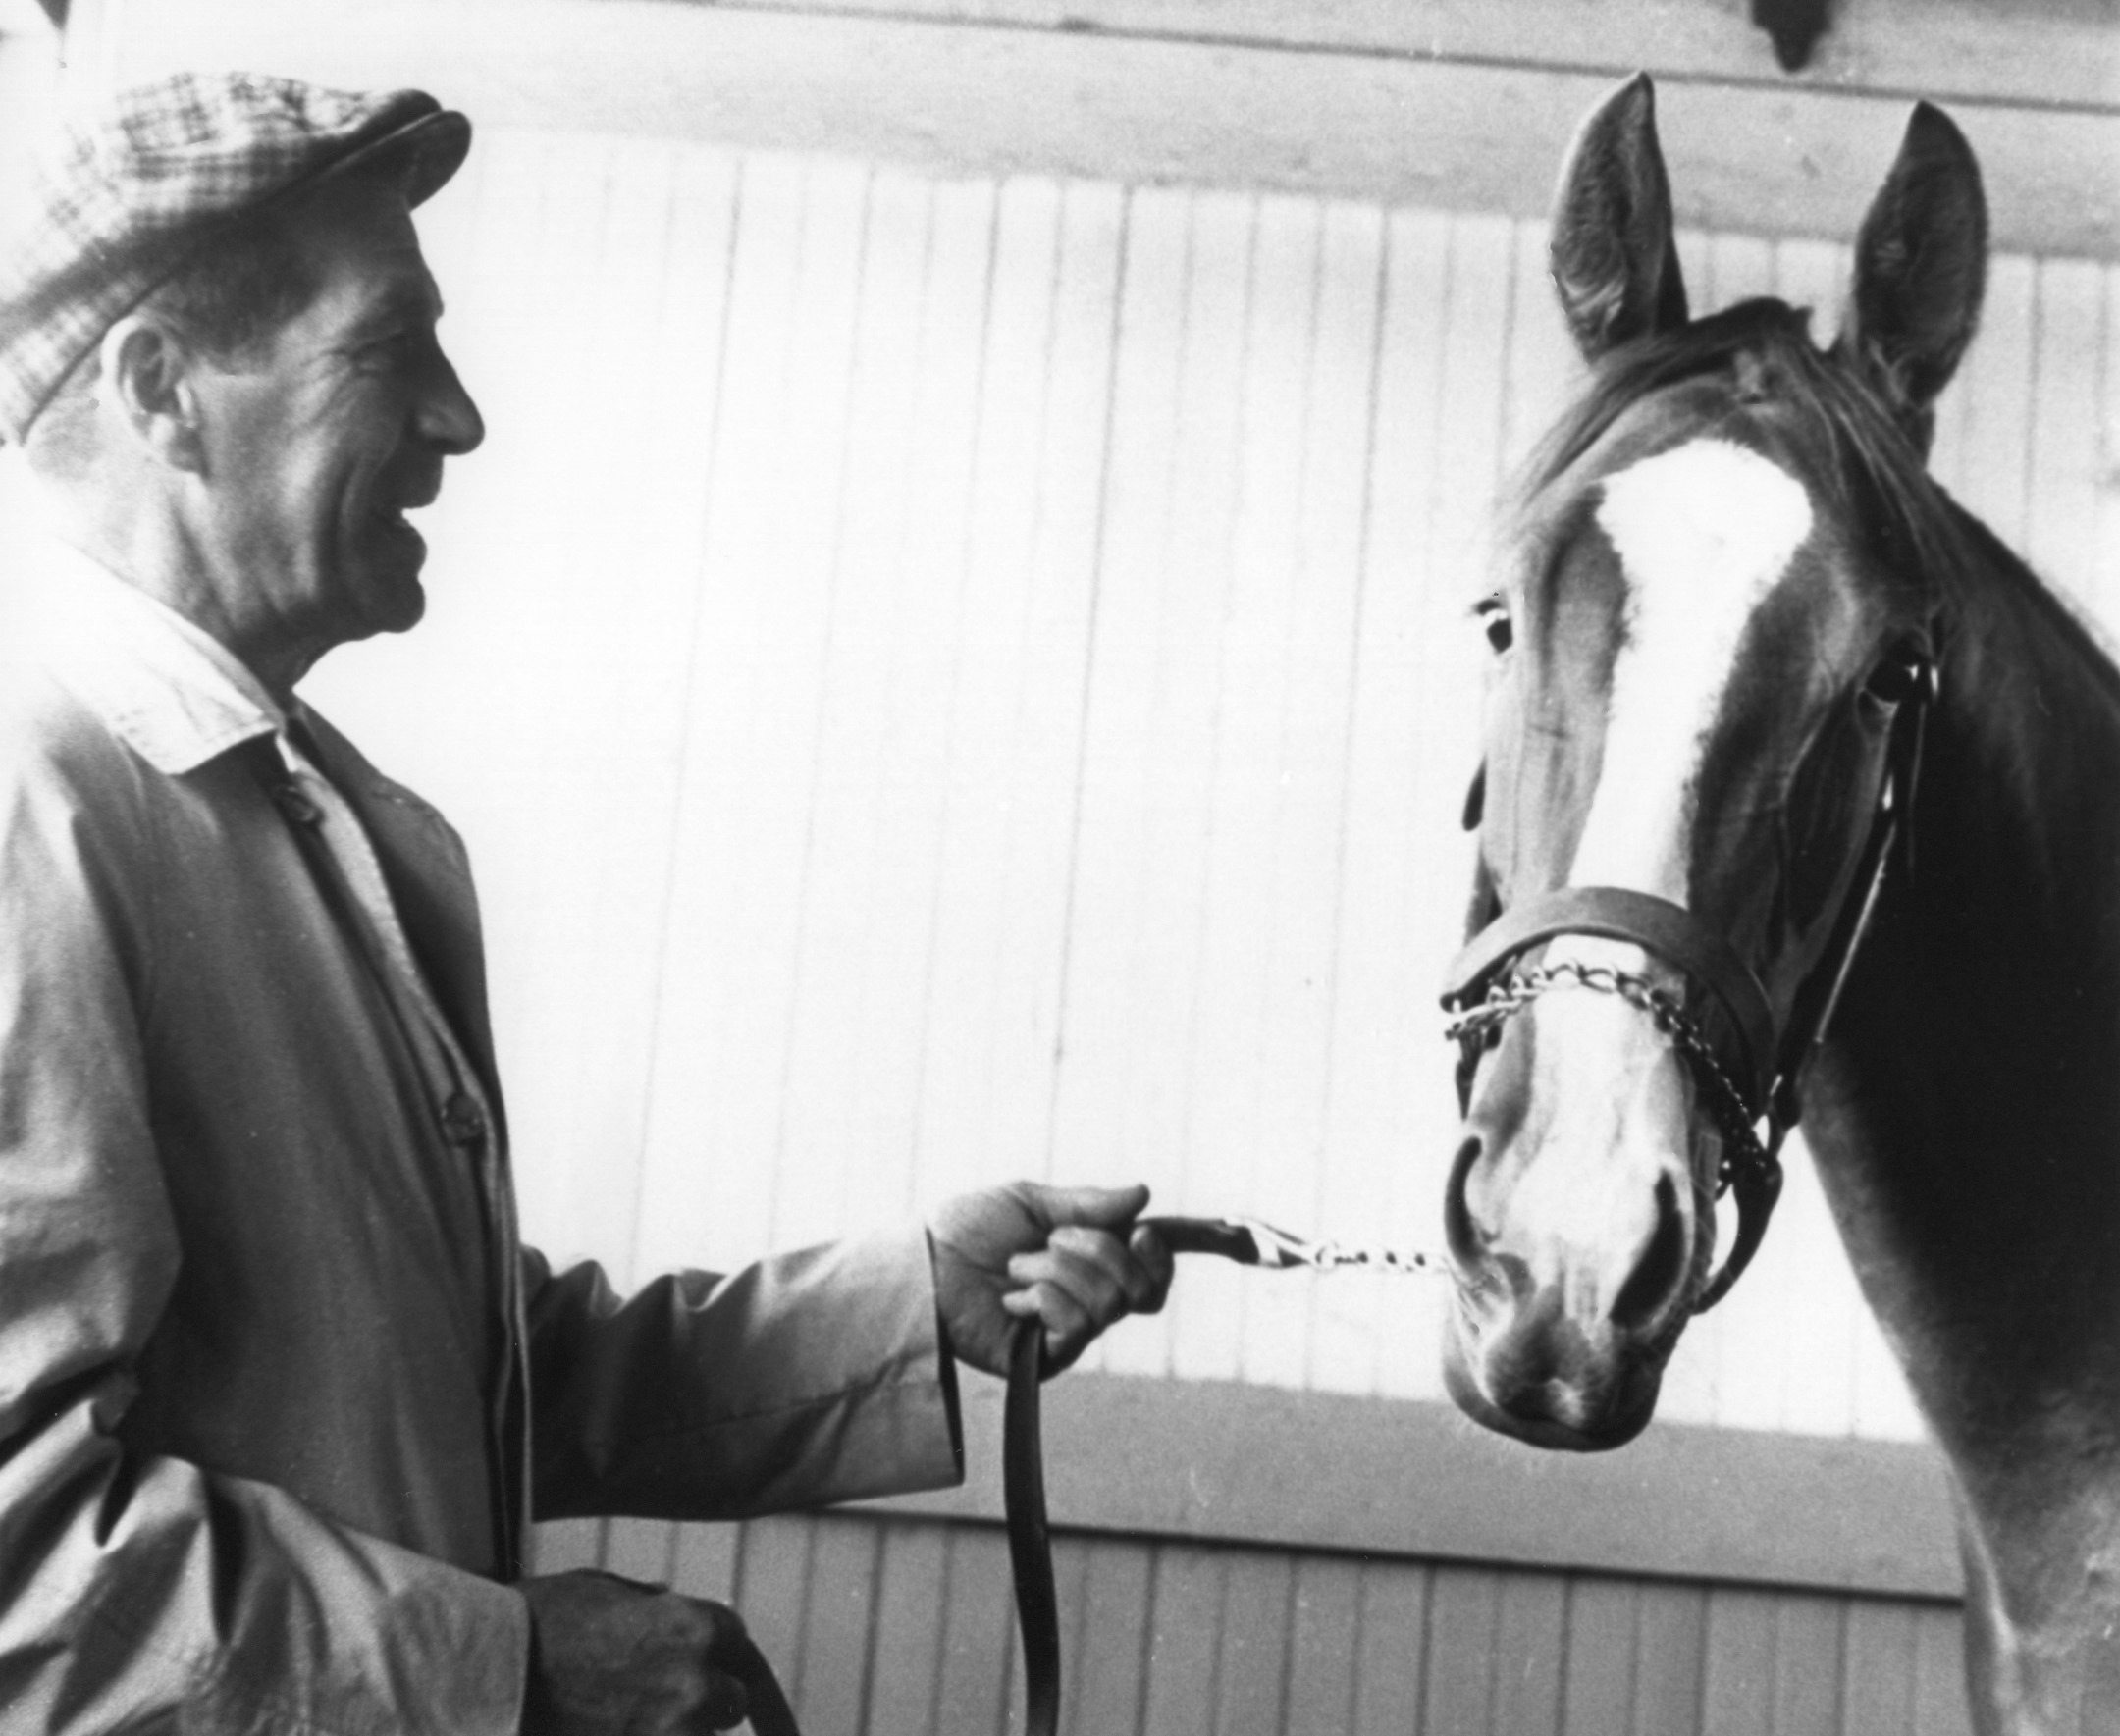 Jim Maloney with Lamb Chop in 1963 (NYRA/Museum Collection)